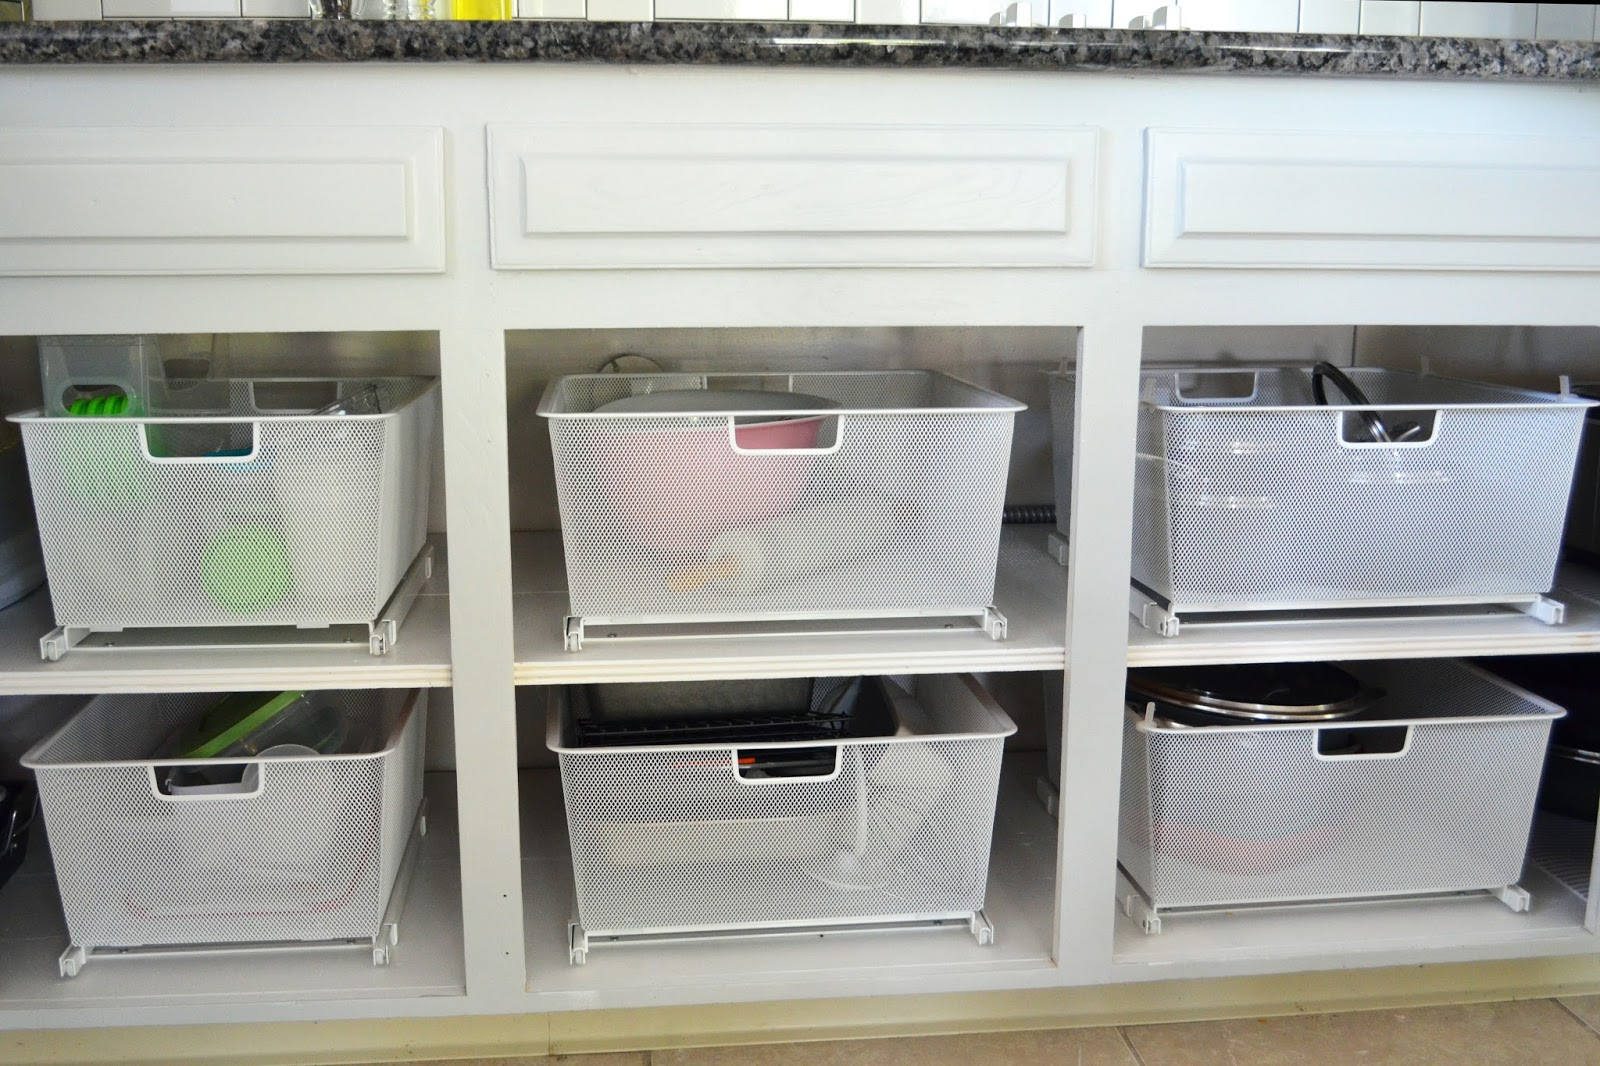 Stacy charlie kitchen cabinet organization Organizing kitchen cabinets and drawers